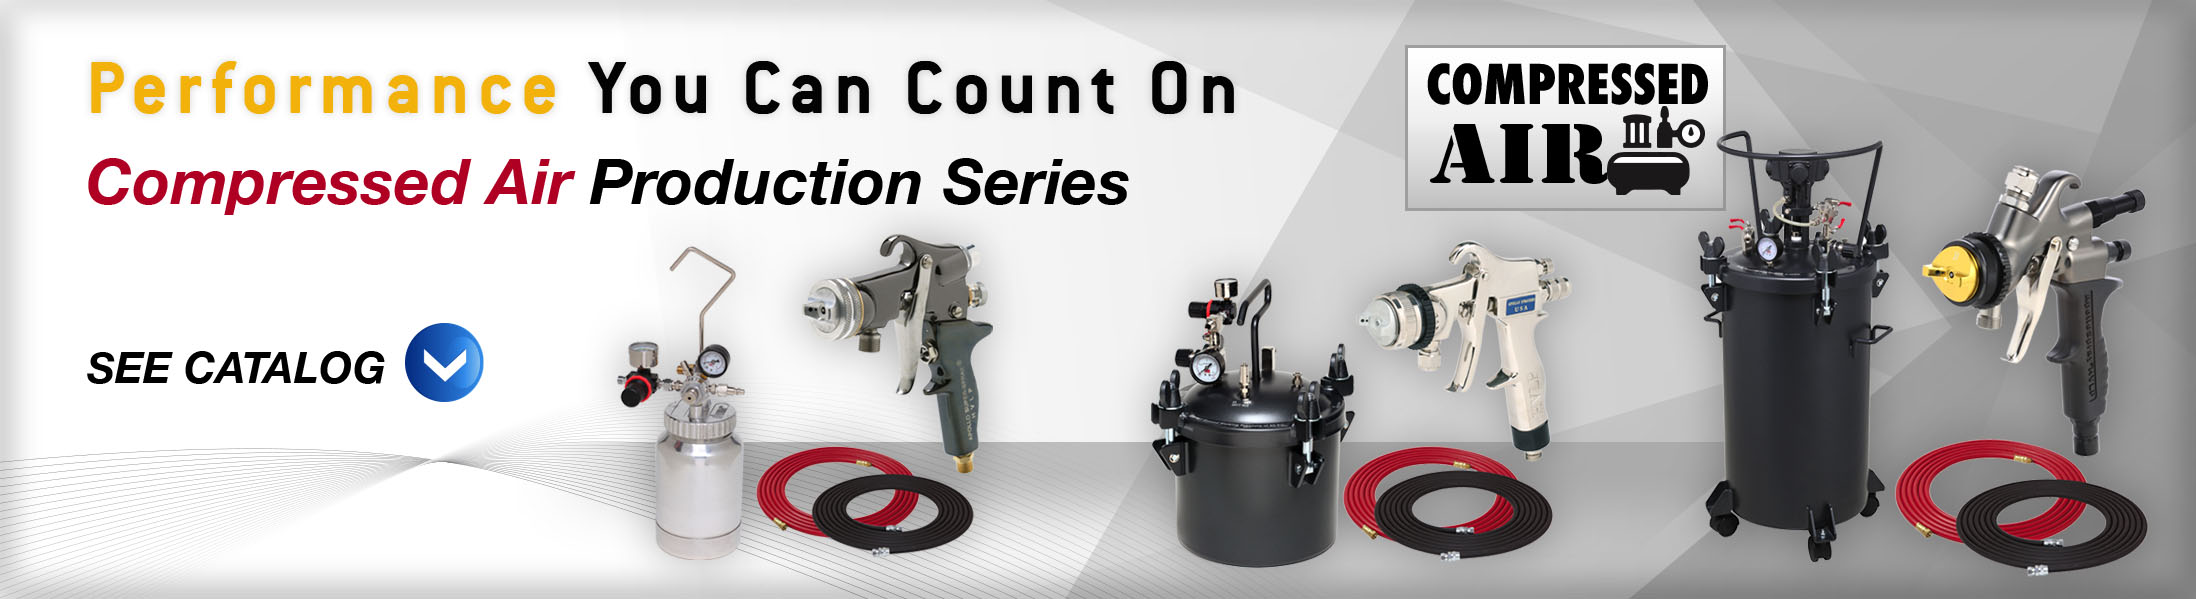 Compressed Air Production Series